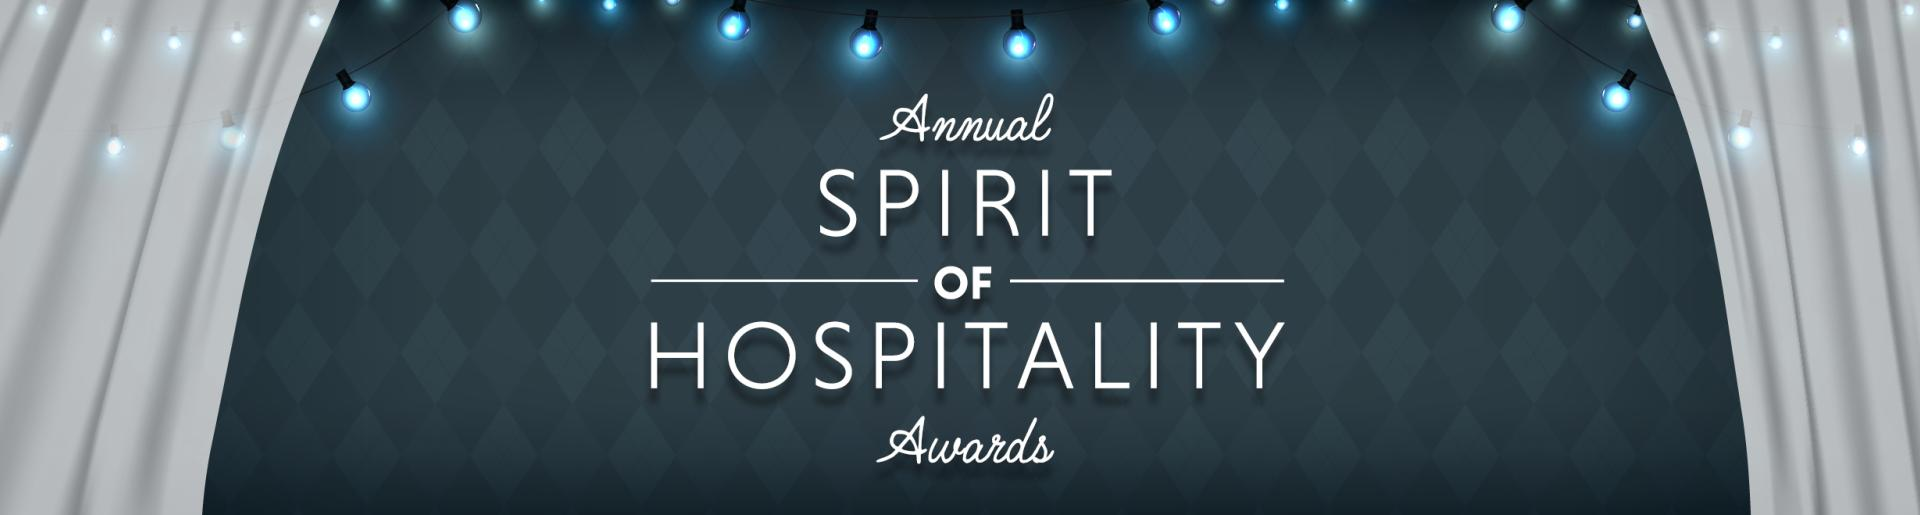 Spirit of Hospitality Awards